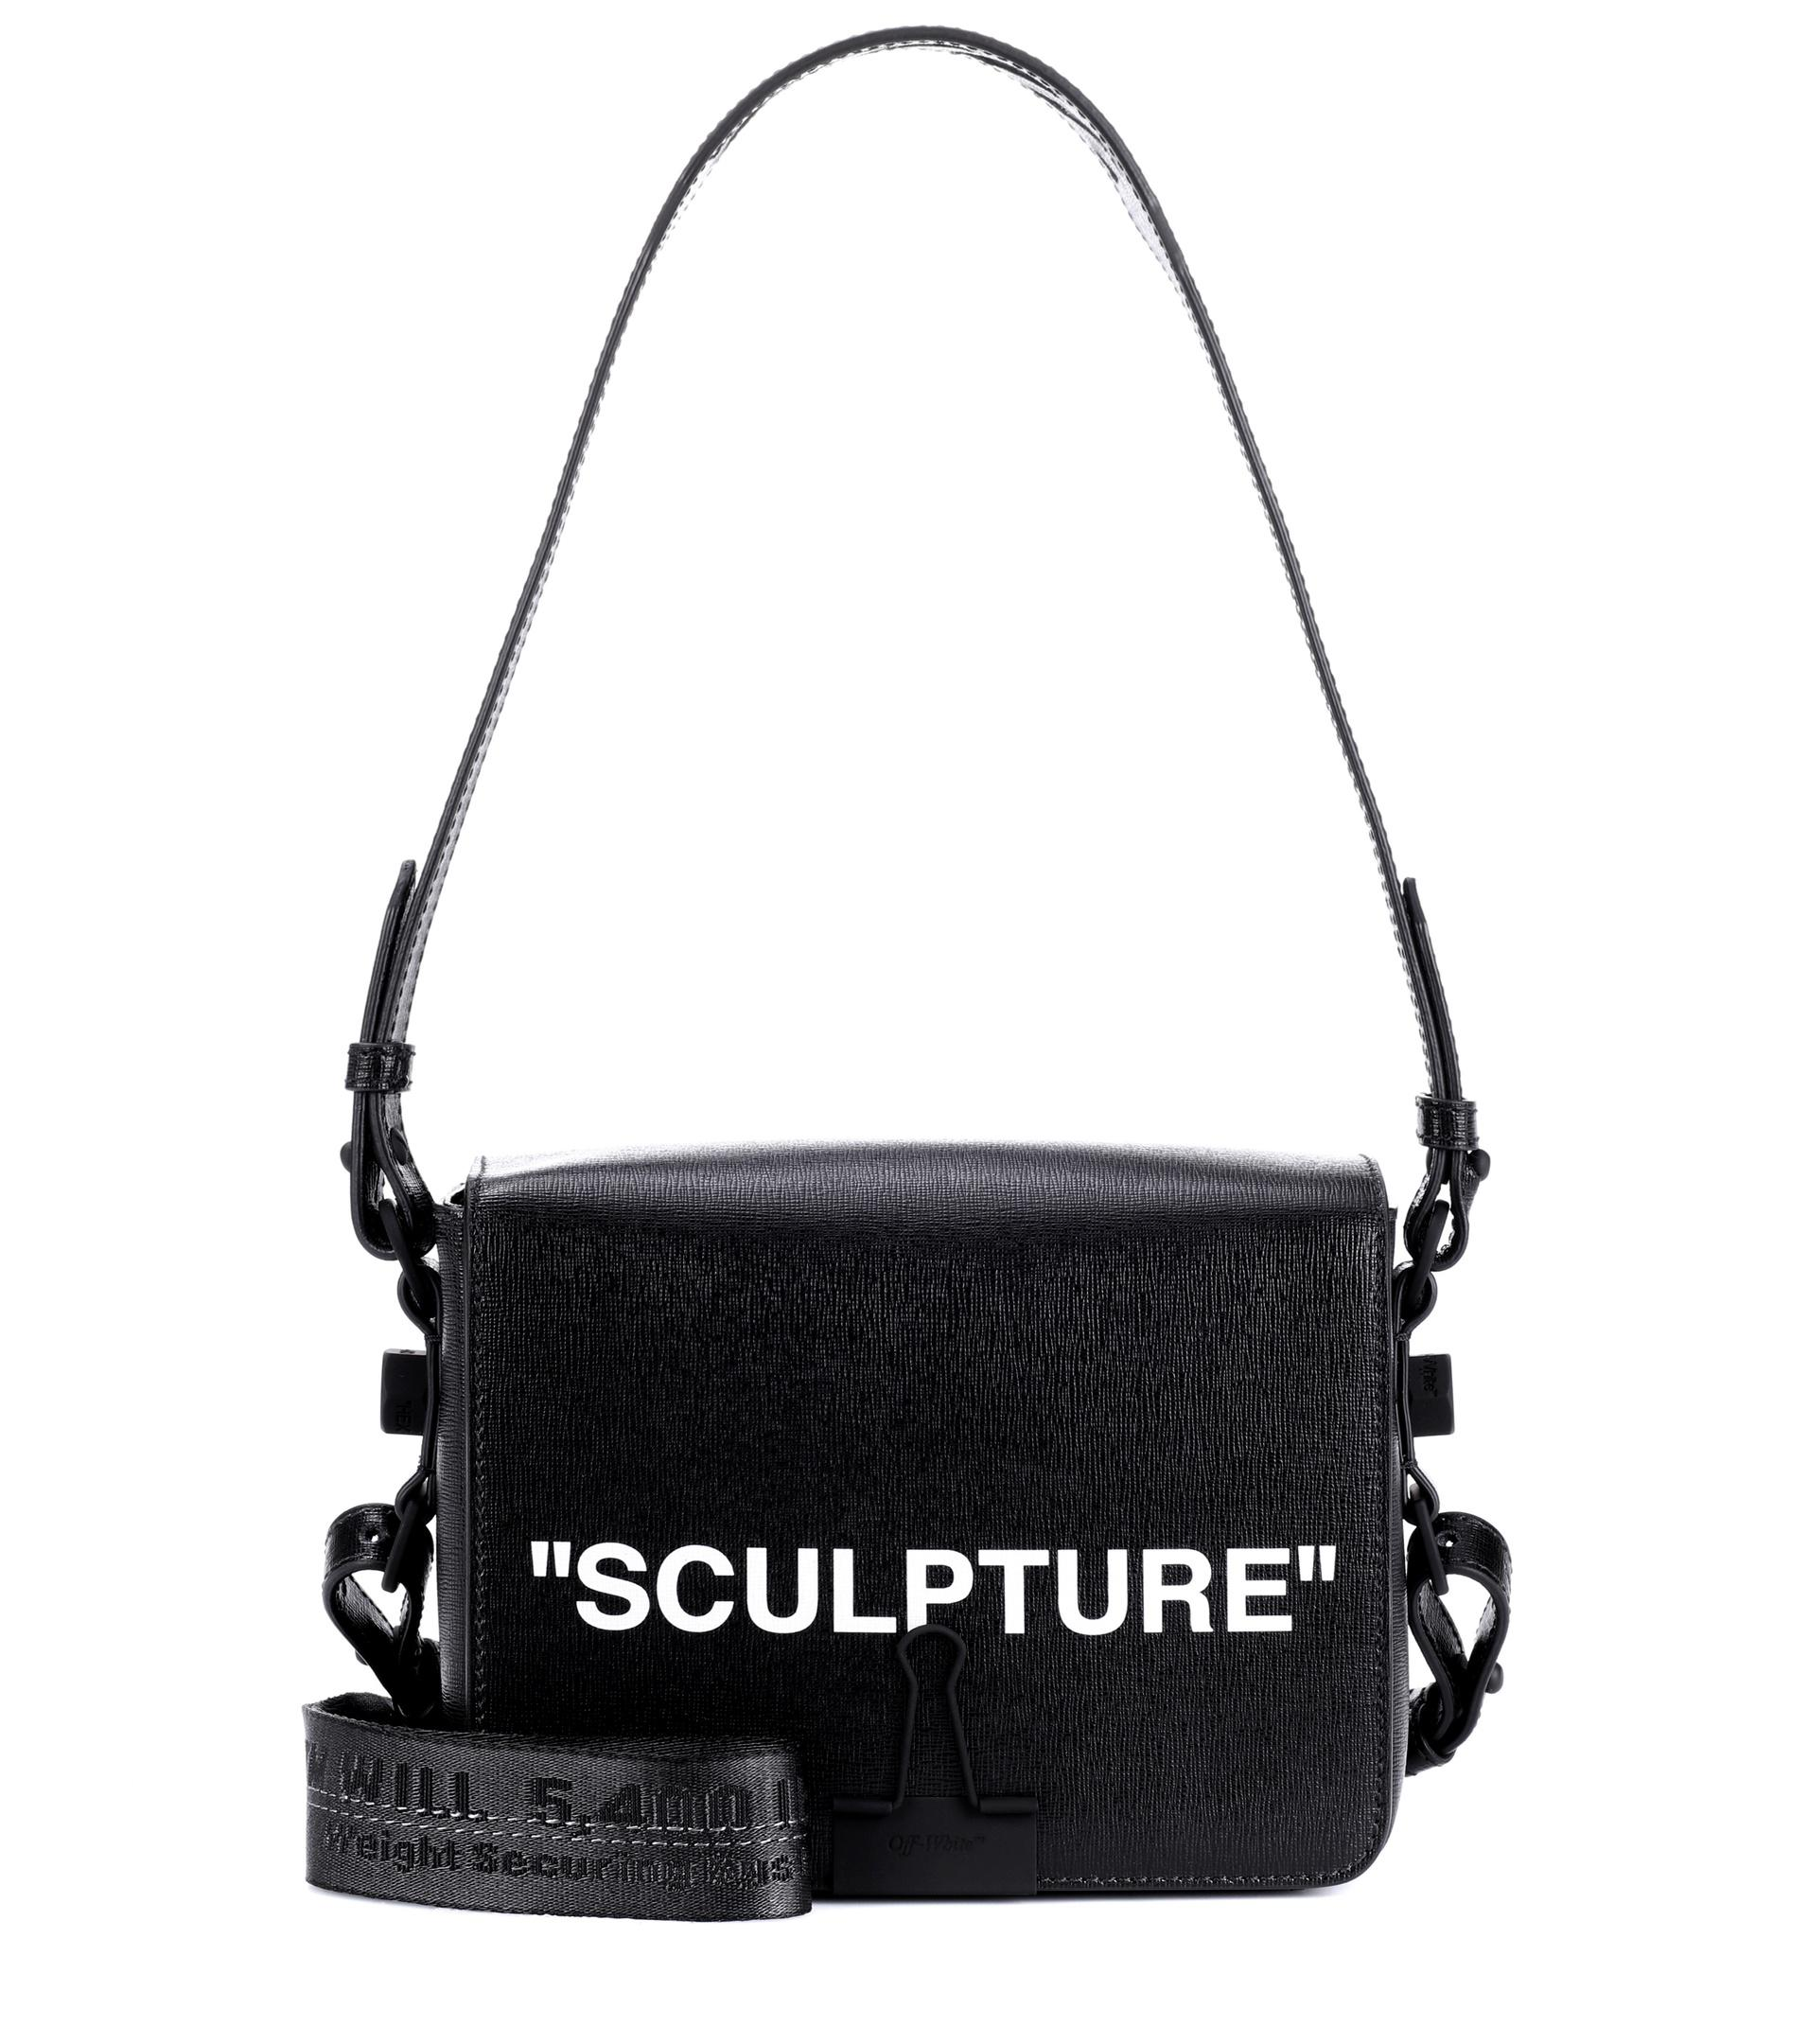 Off-white Sculpture Saffiano Leather Flap Crossbody Bag with Binder Clip dsav4ey